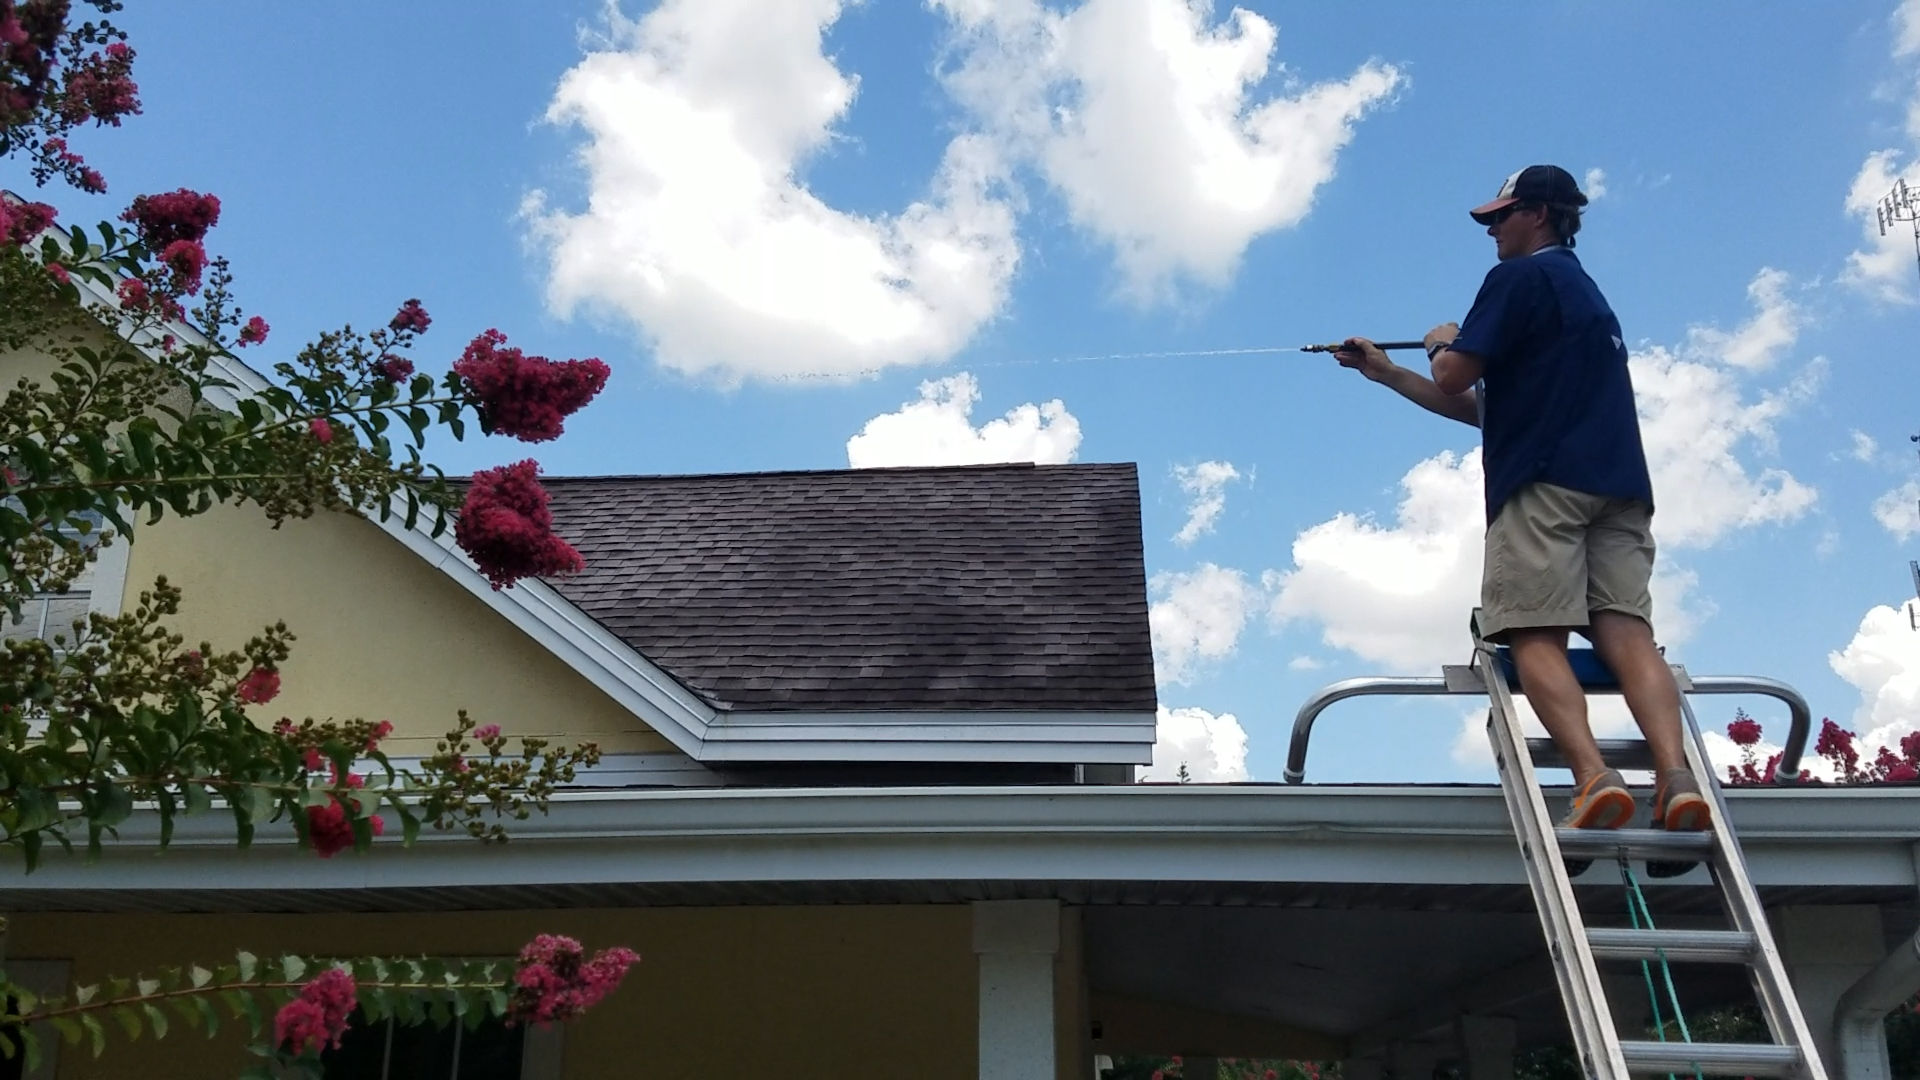 Roof Cleaning Softwash Systems